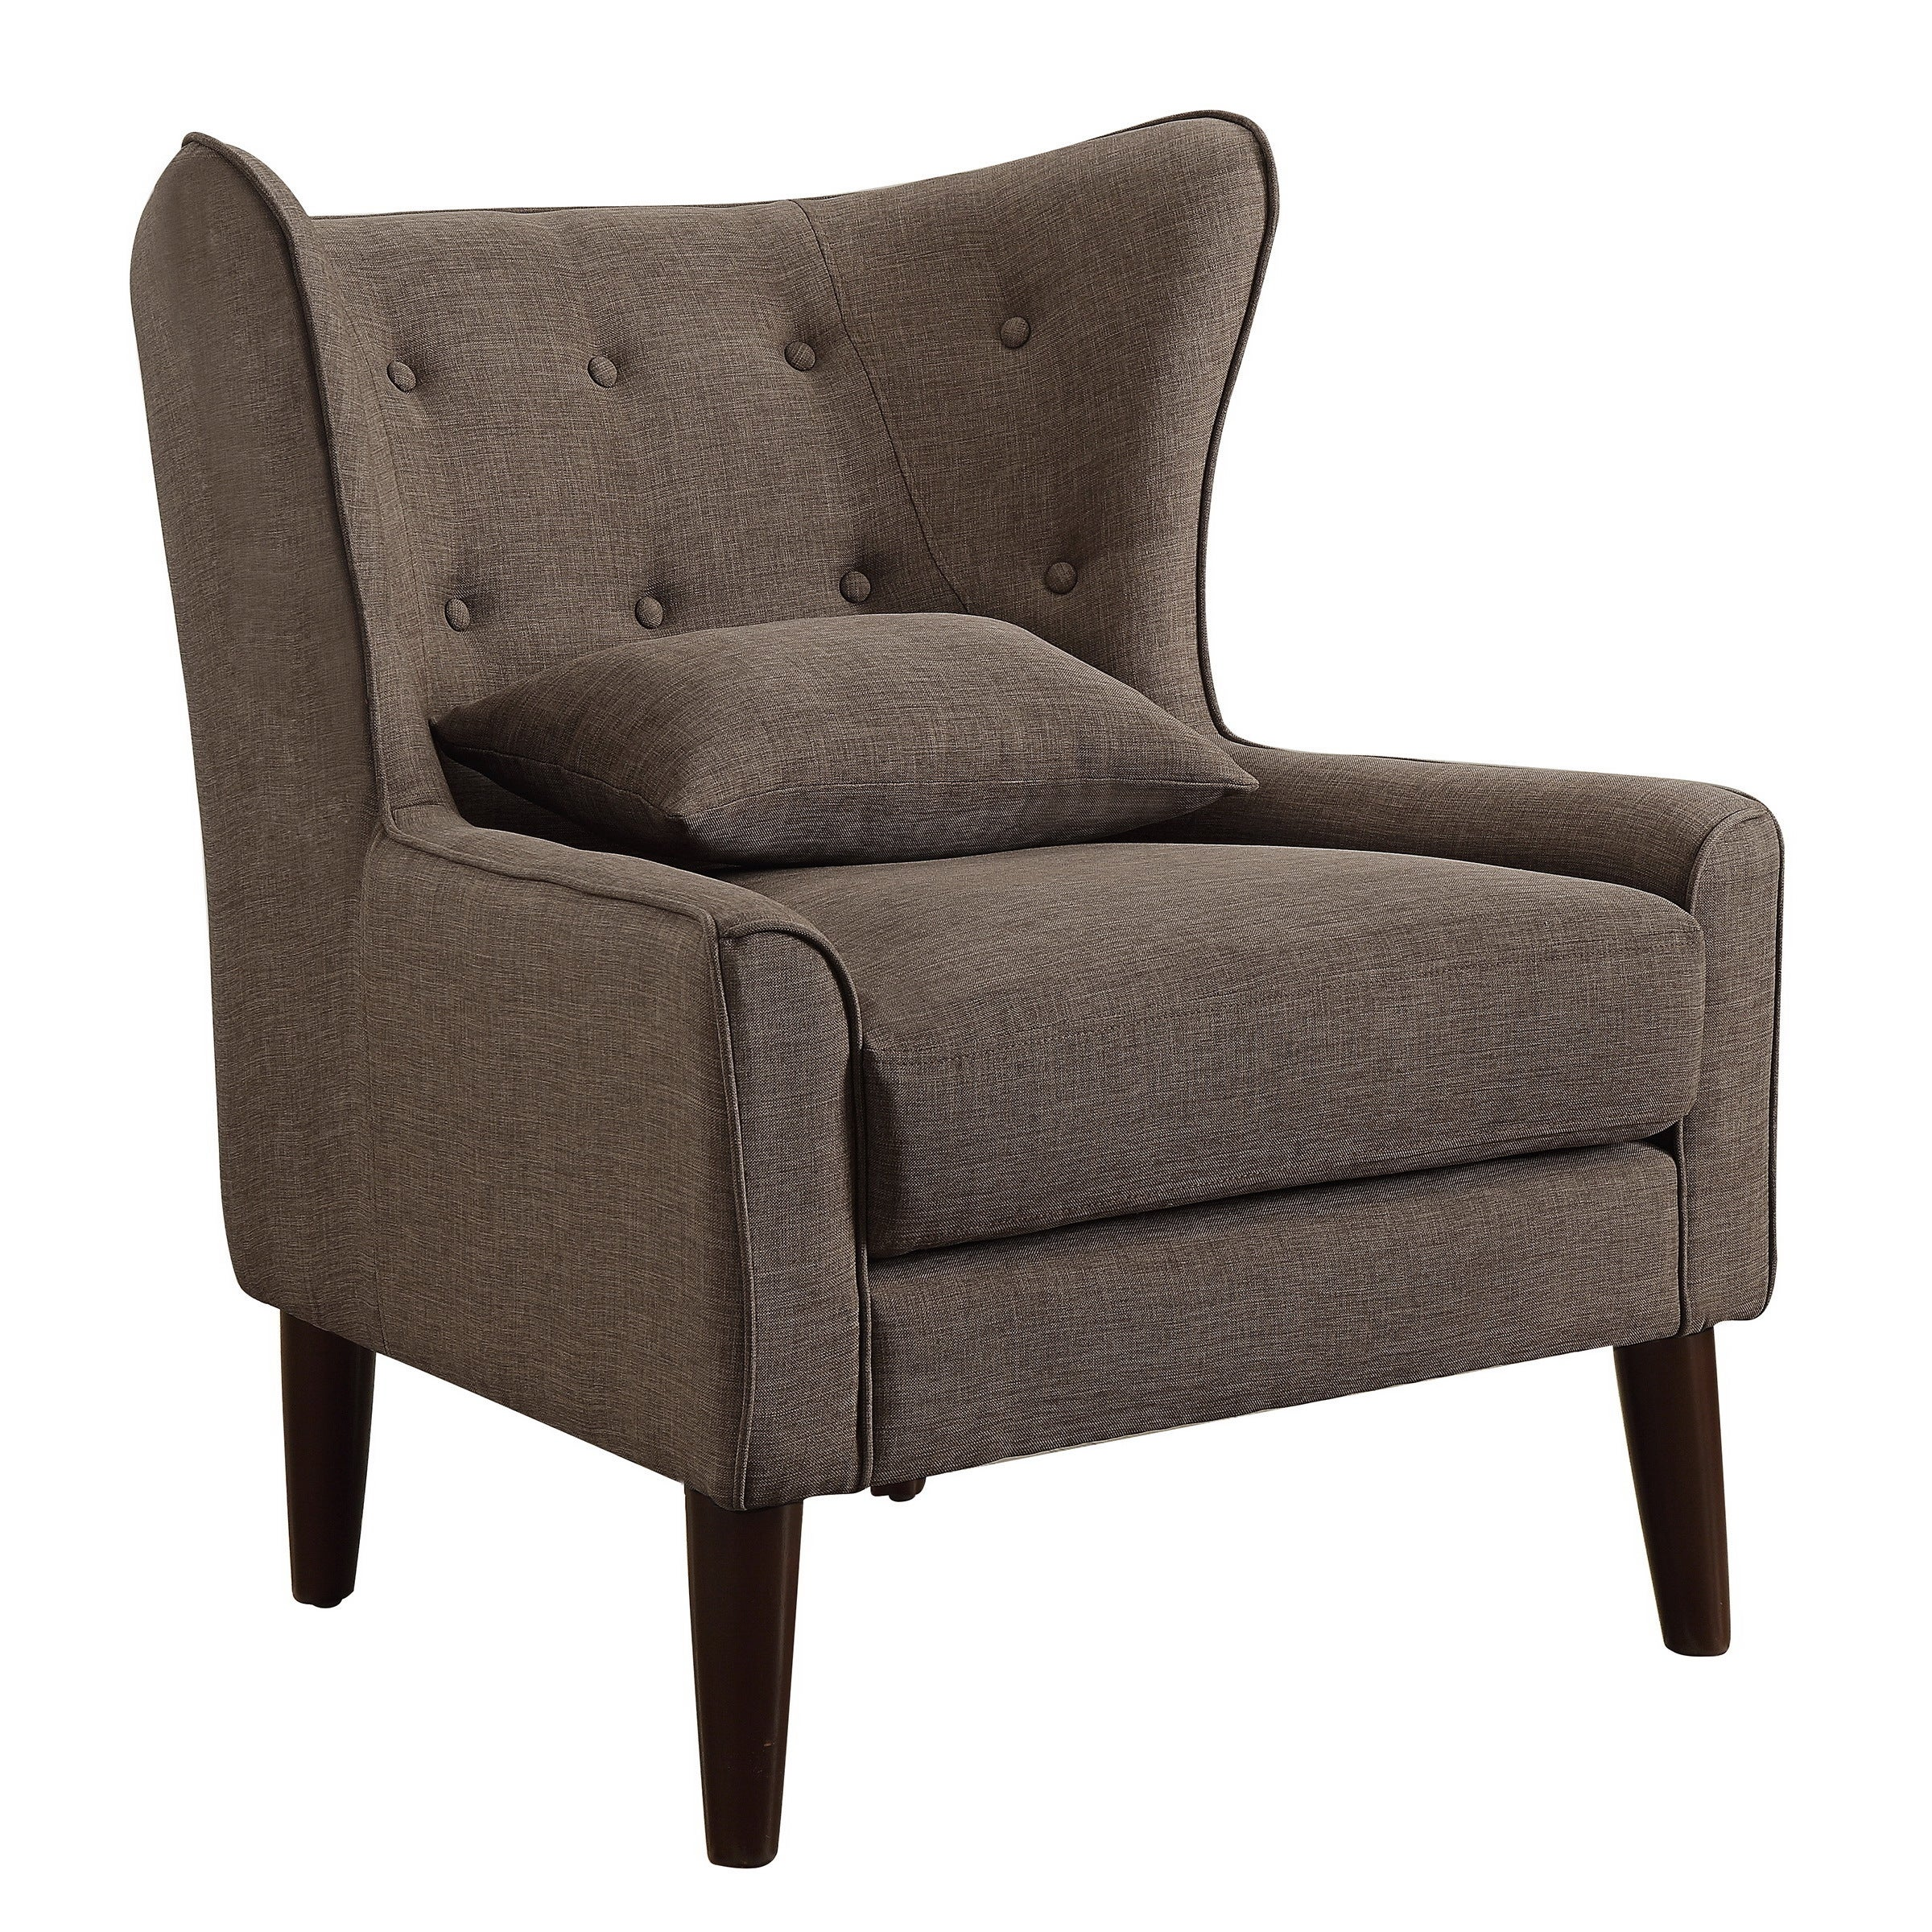 Shop Rosevera Liviana Tufted Wingback Chair With Back Cushion   On Sale    Free Shipping Today   Overstock.com   15923898